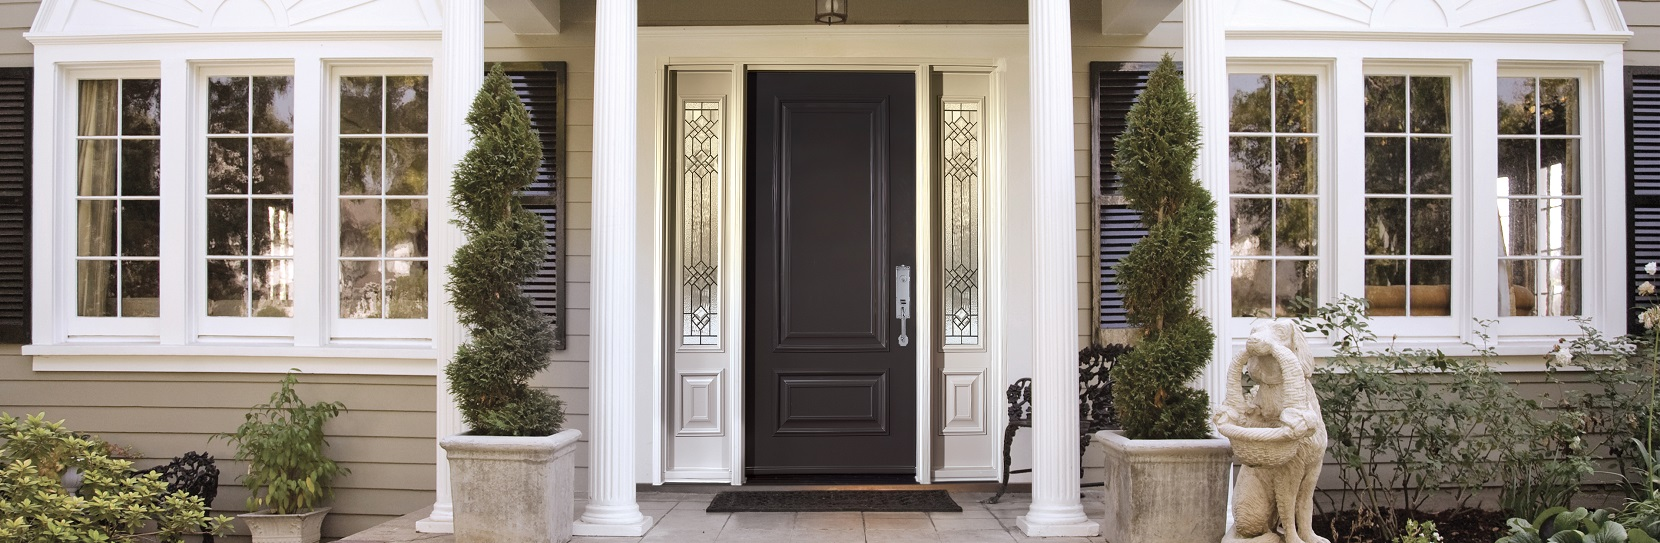 front-door-entry-system